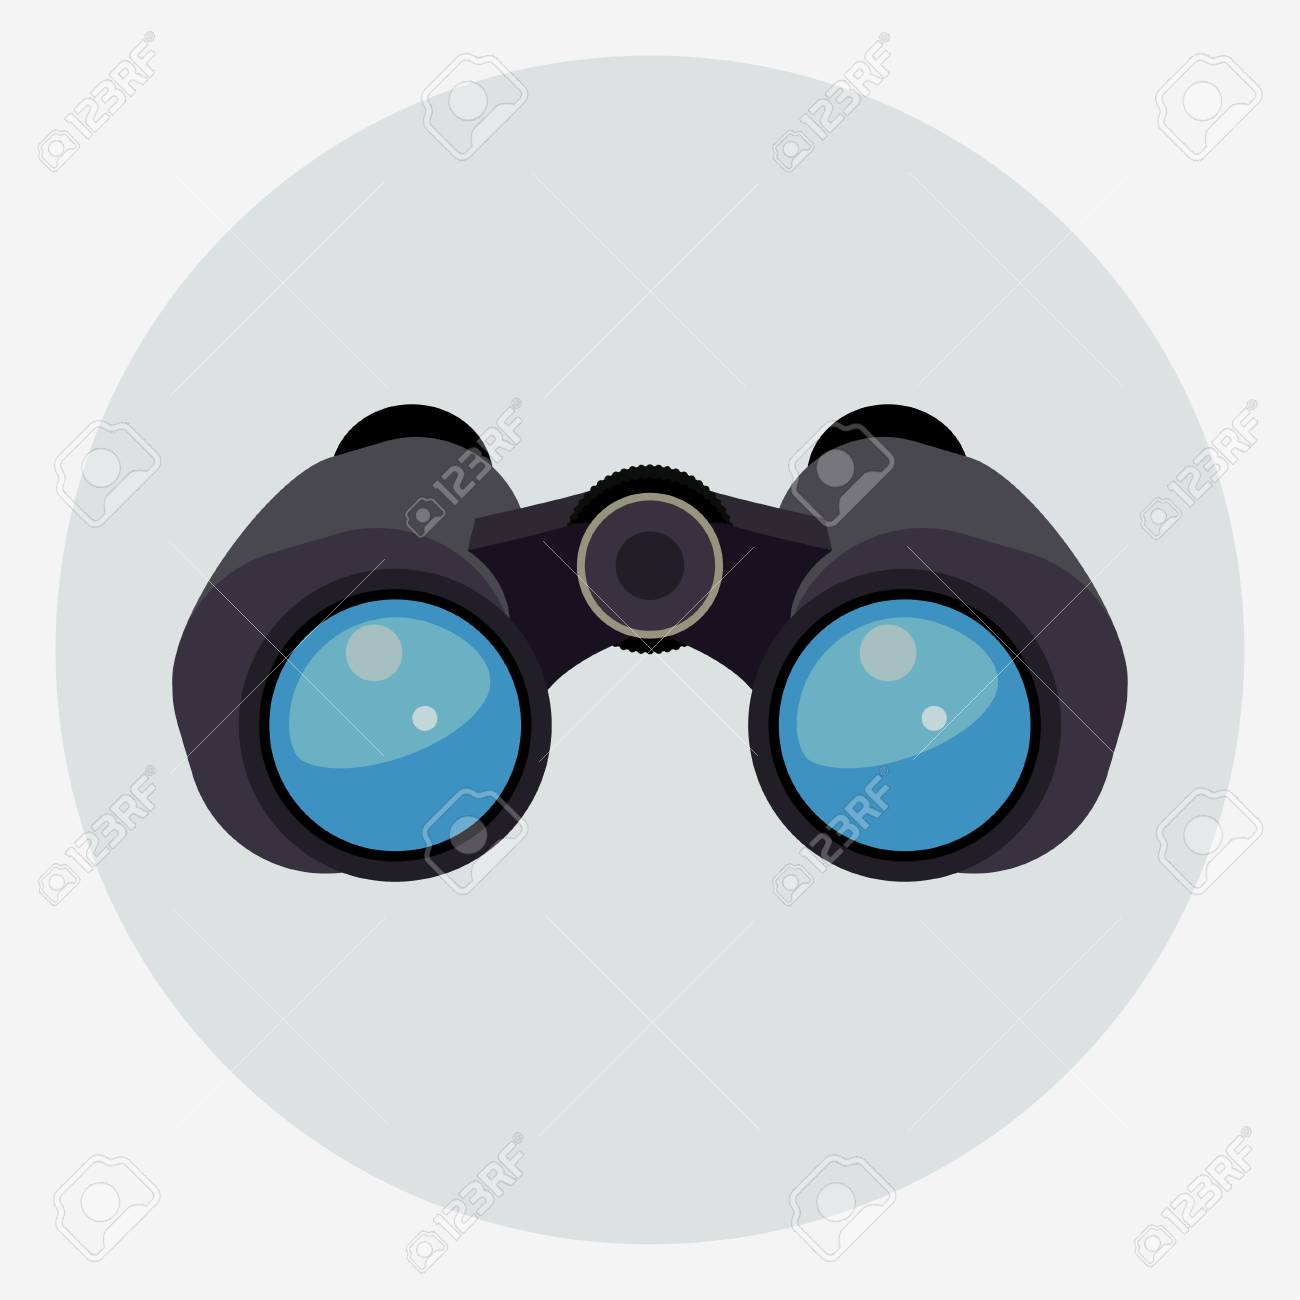 Binoculars with clear blue lenses isolated, explorer find icon. Vector - 110091061